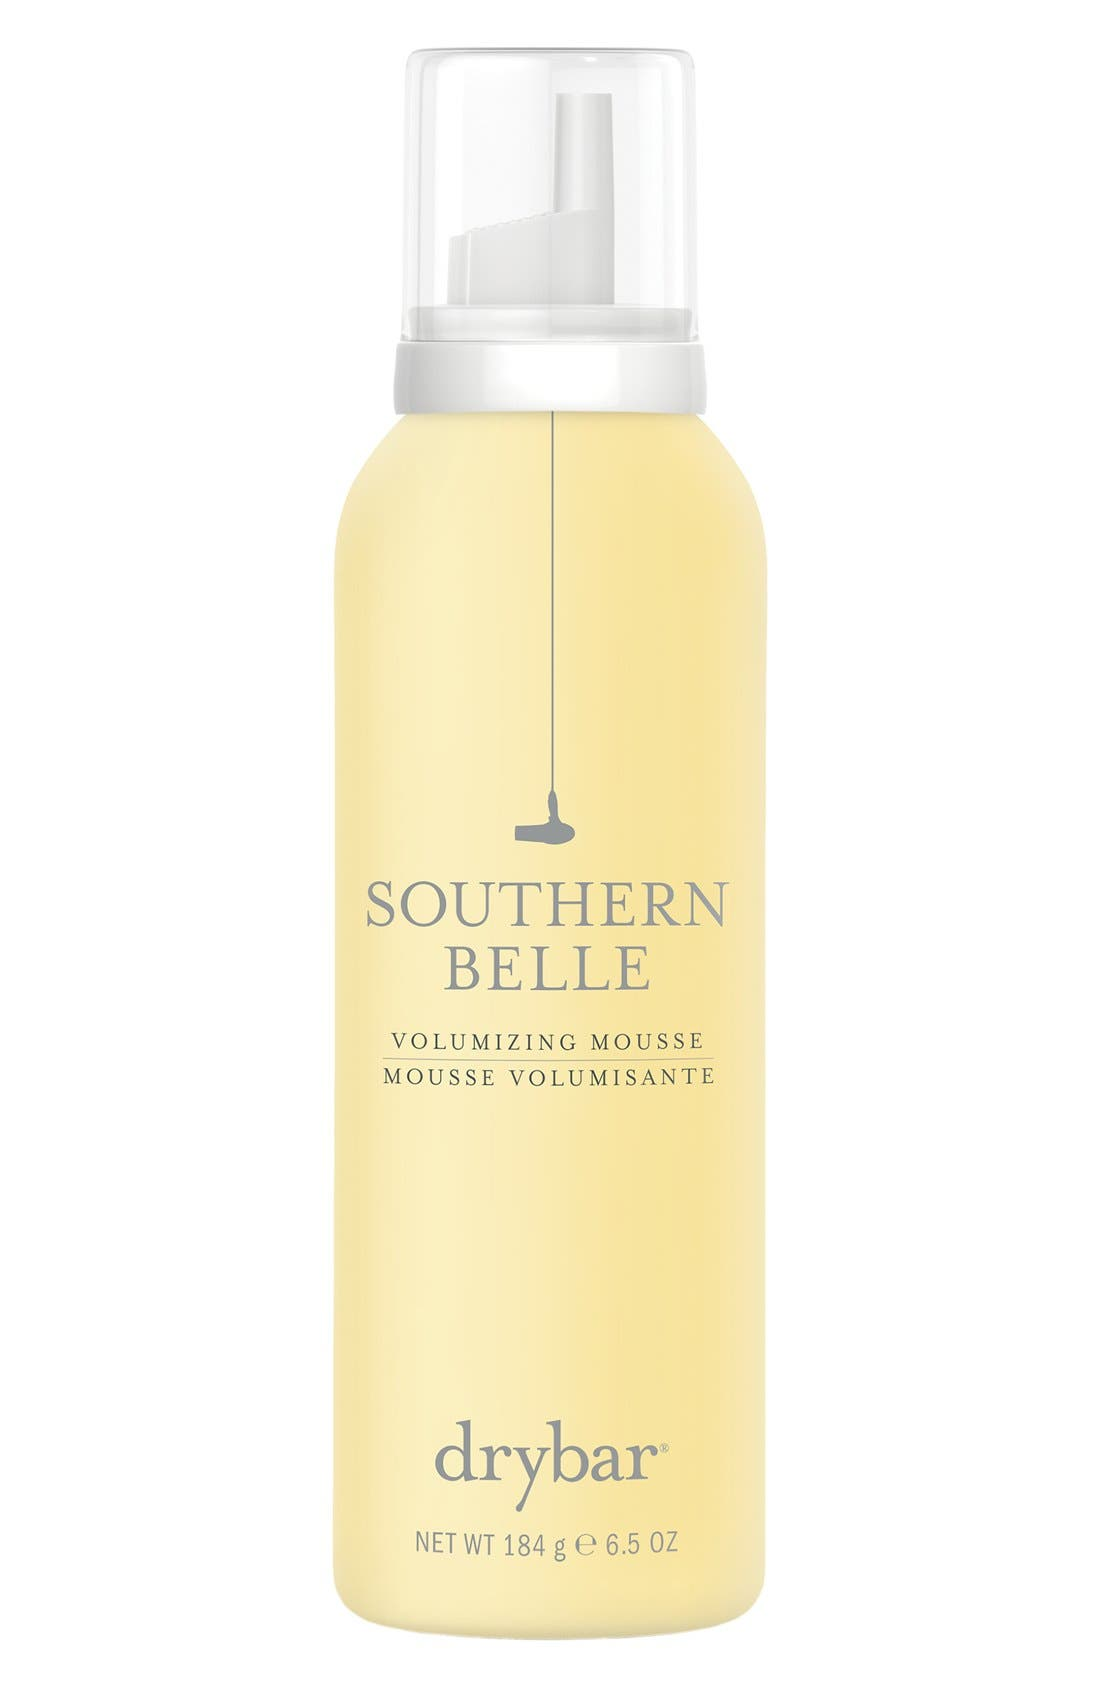 Drybar 'Southern Belle' Volumizing Mousse